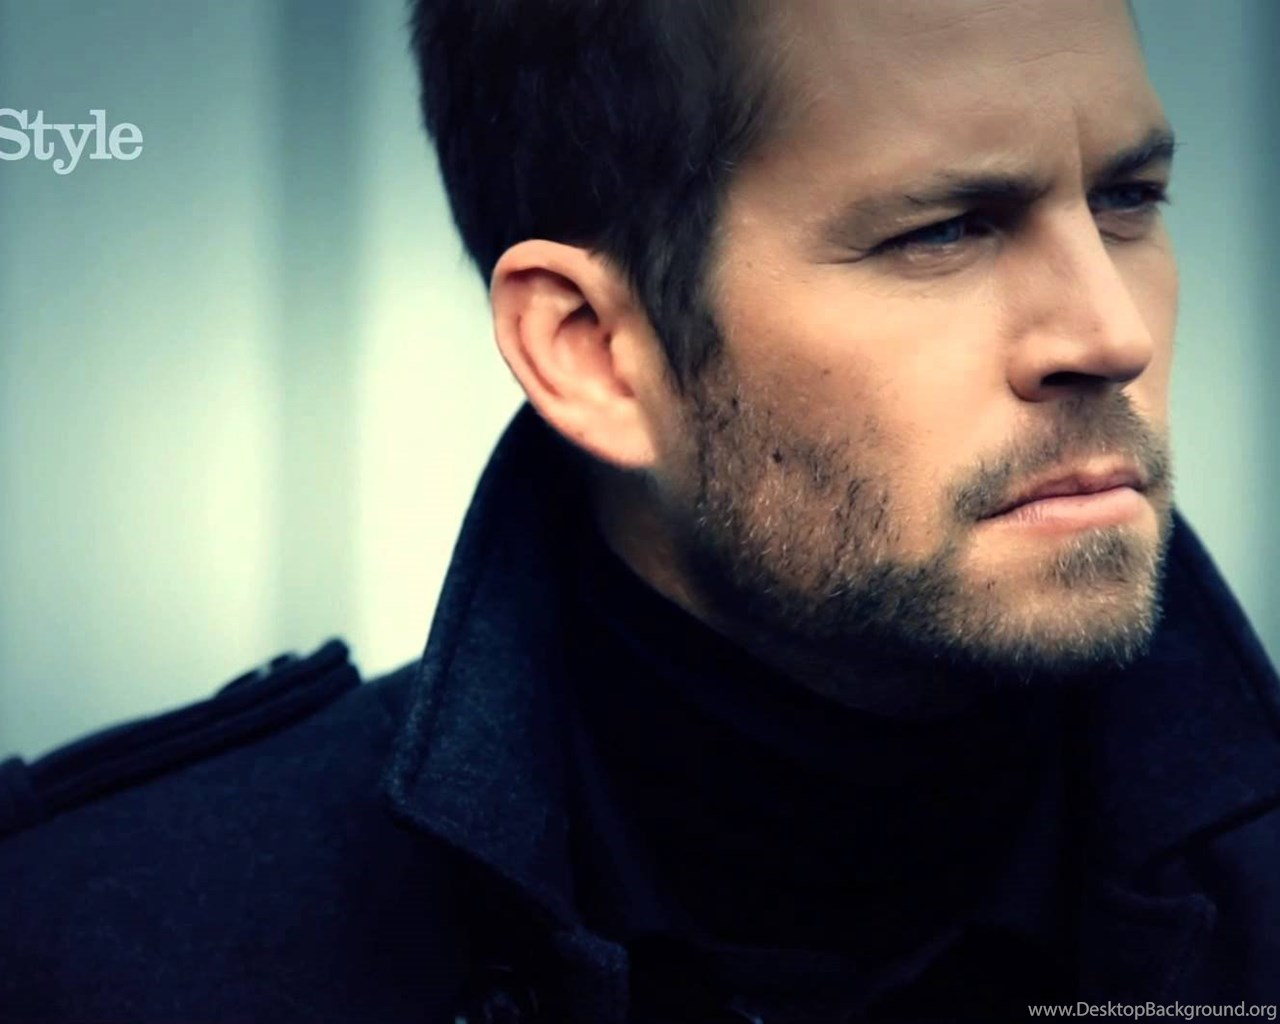 Paul Walker Style Hd Wallpapers Desktop Background